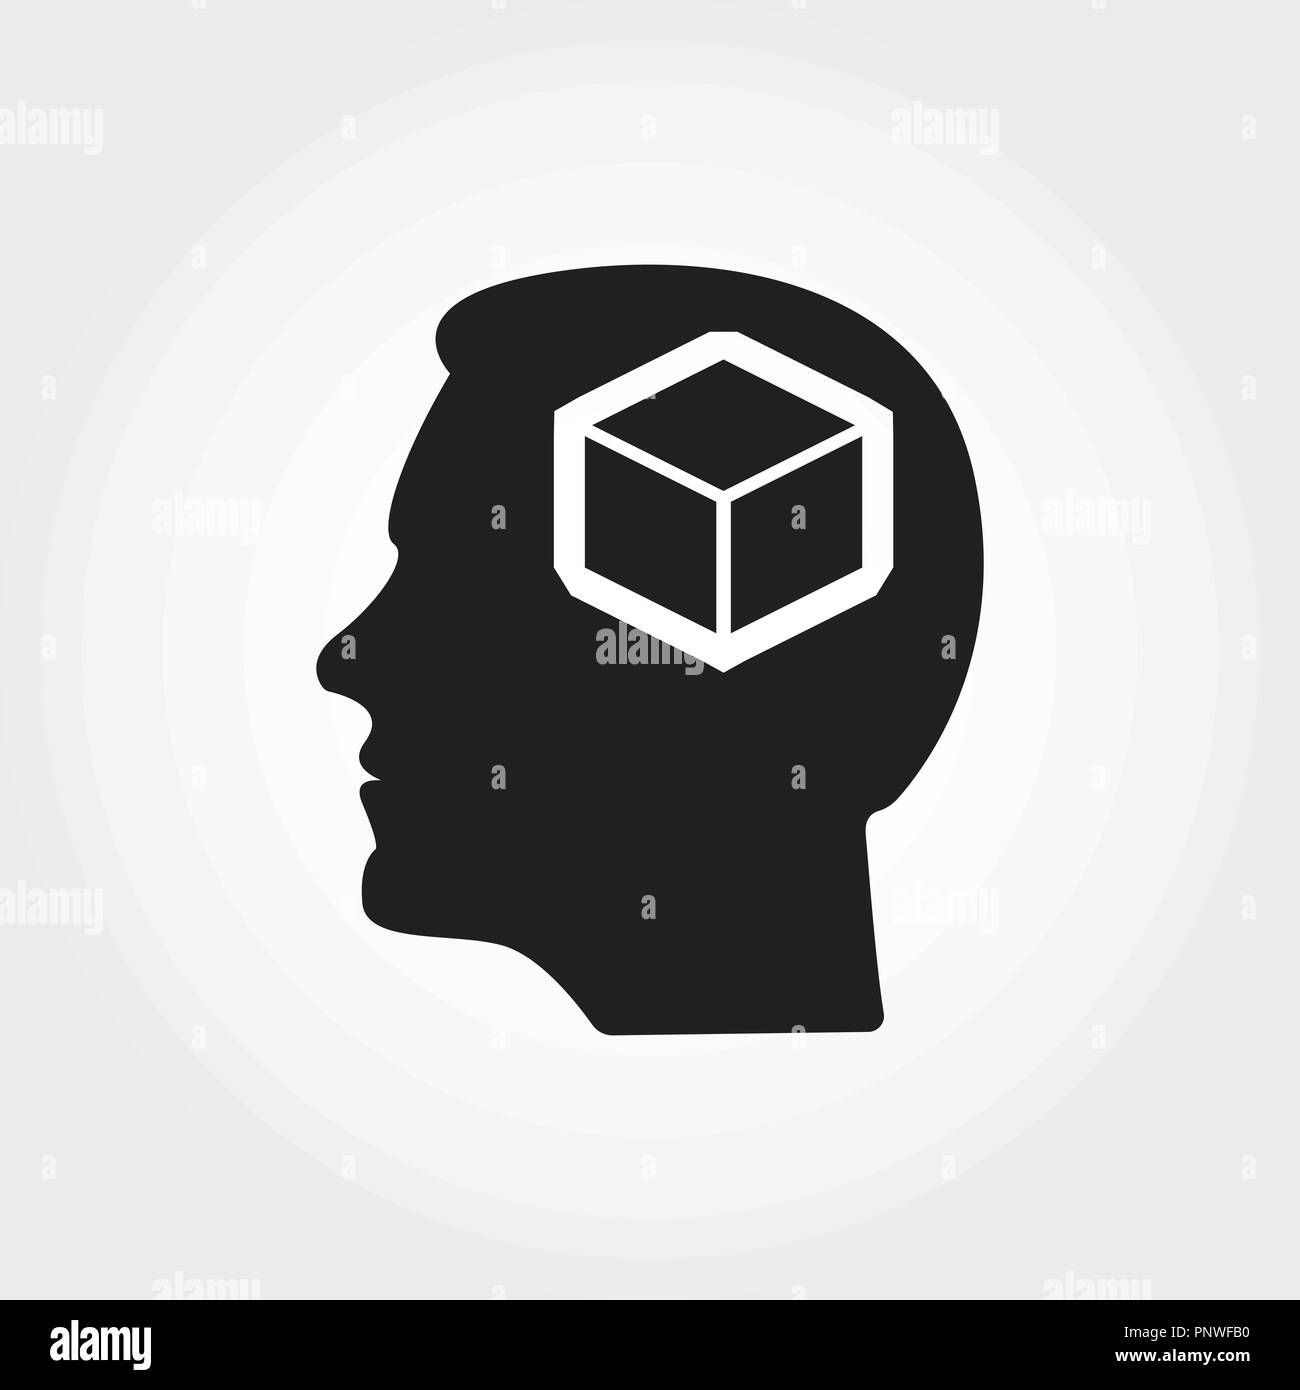 Personality icon. Monochrome element illustration. Personality icon design from soft skills collection. Web design, apps, software and print usage. - Stock Vector